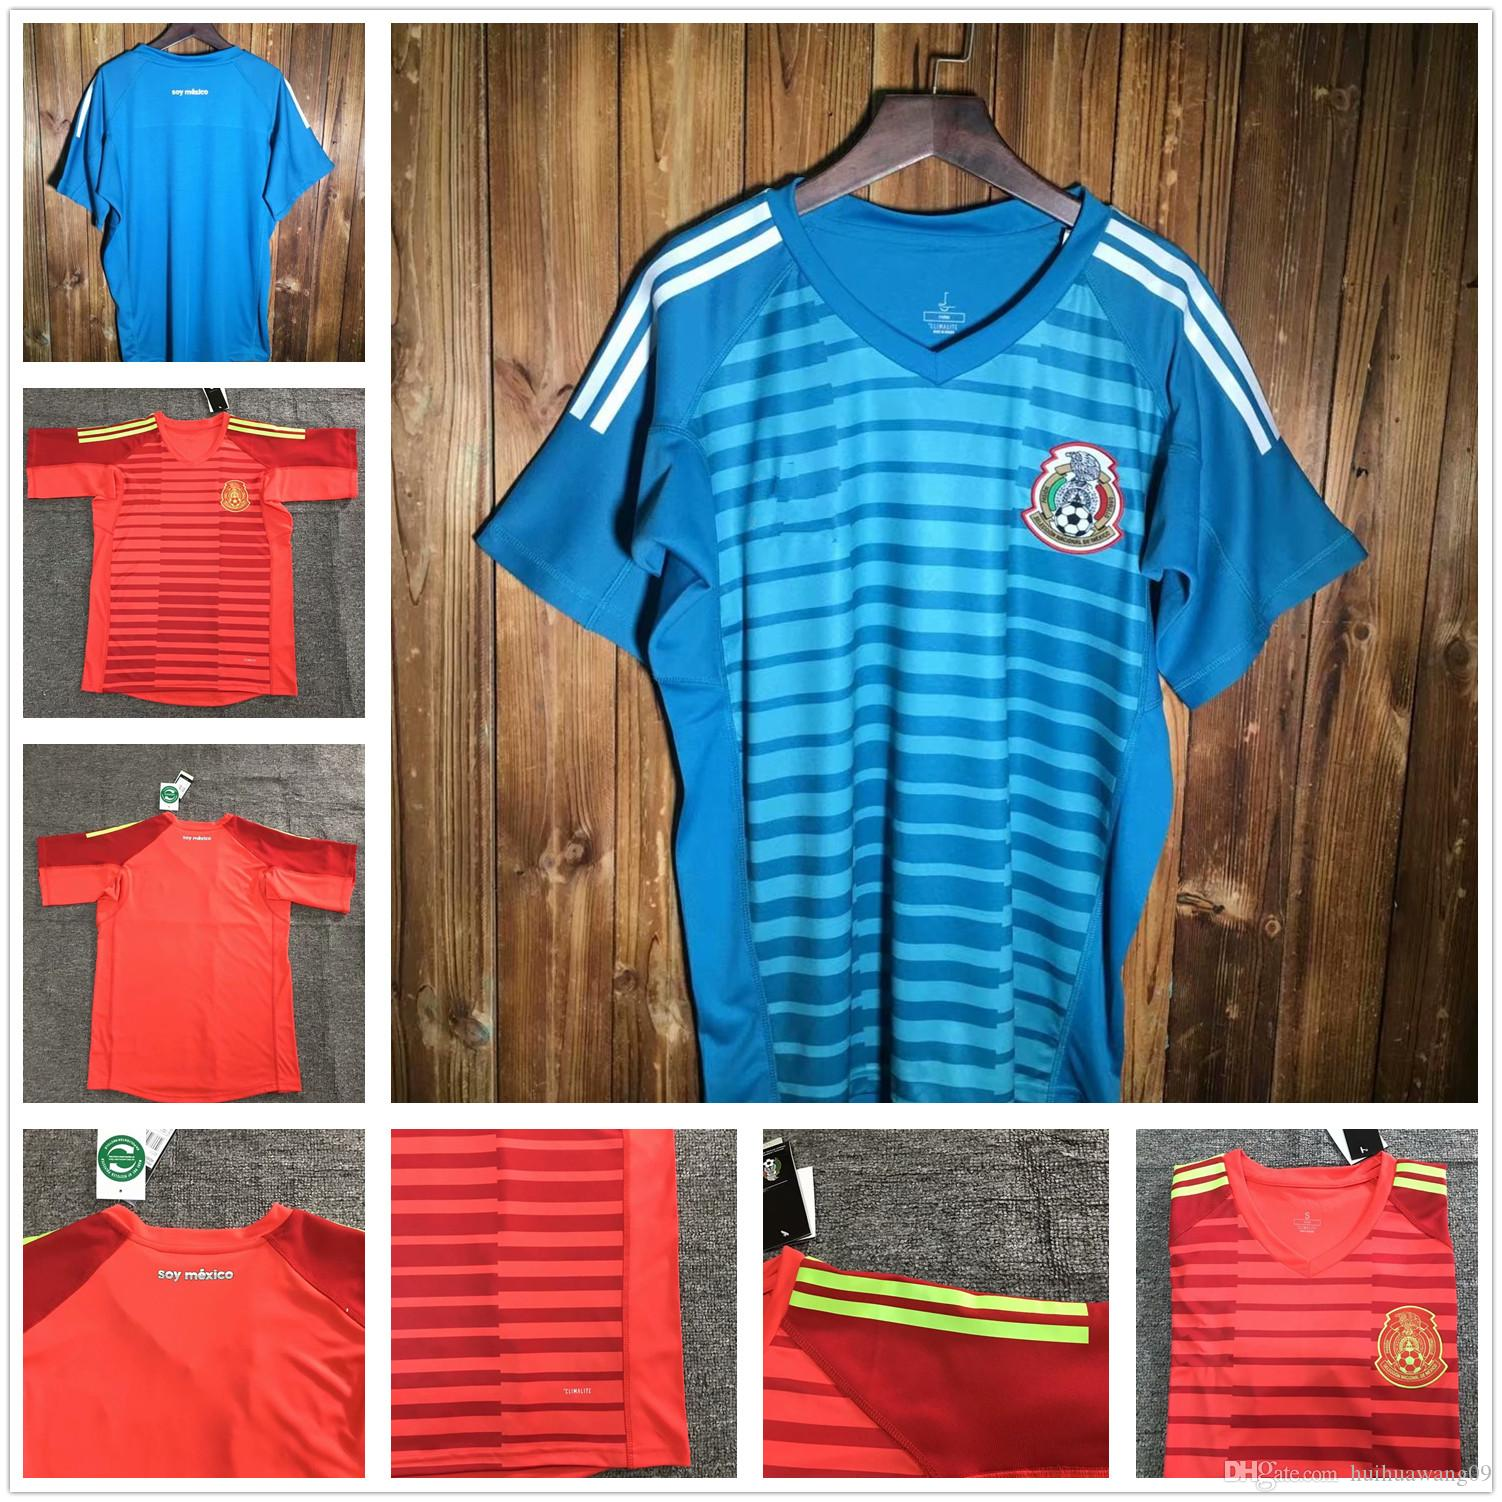 bcfed3b0e 2019 2018 Mexico OCHOA Blue Goalkeeper Jersey Red Keeper G.DOS SANTOS  CHICHARITO World Cup Soccer G.OCHOA CORONA Jerseys Adults Football Shirts  From ...